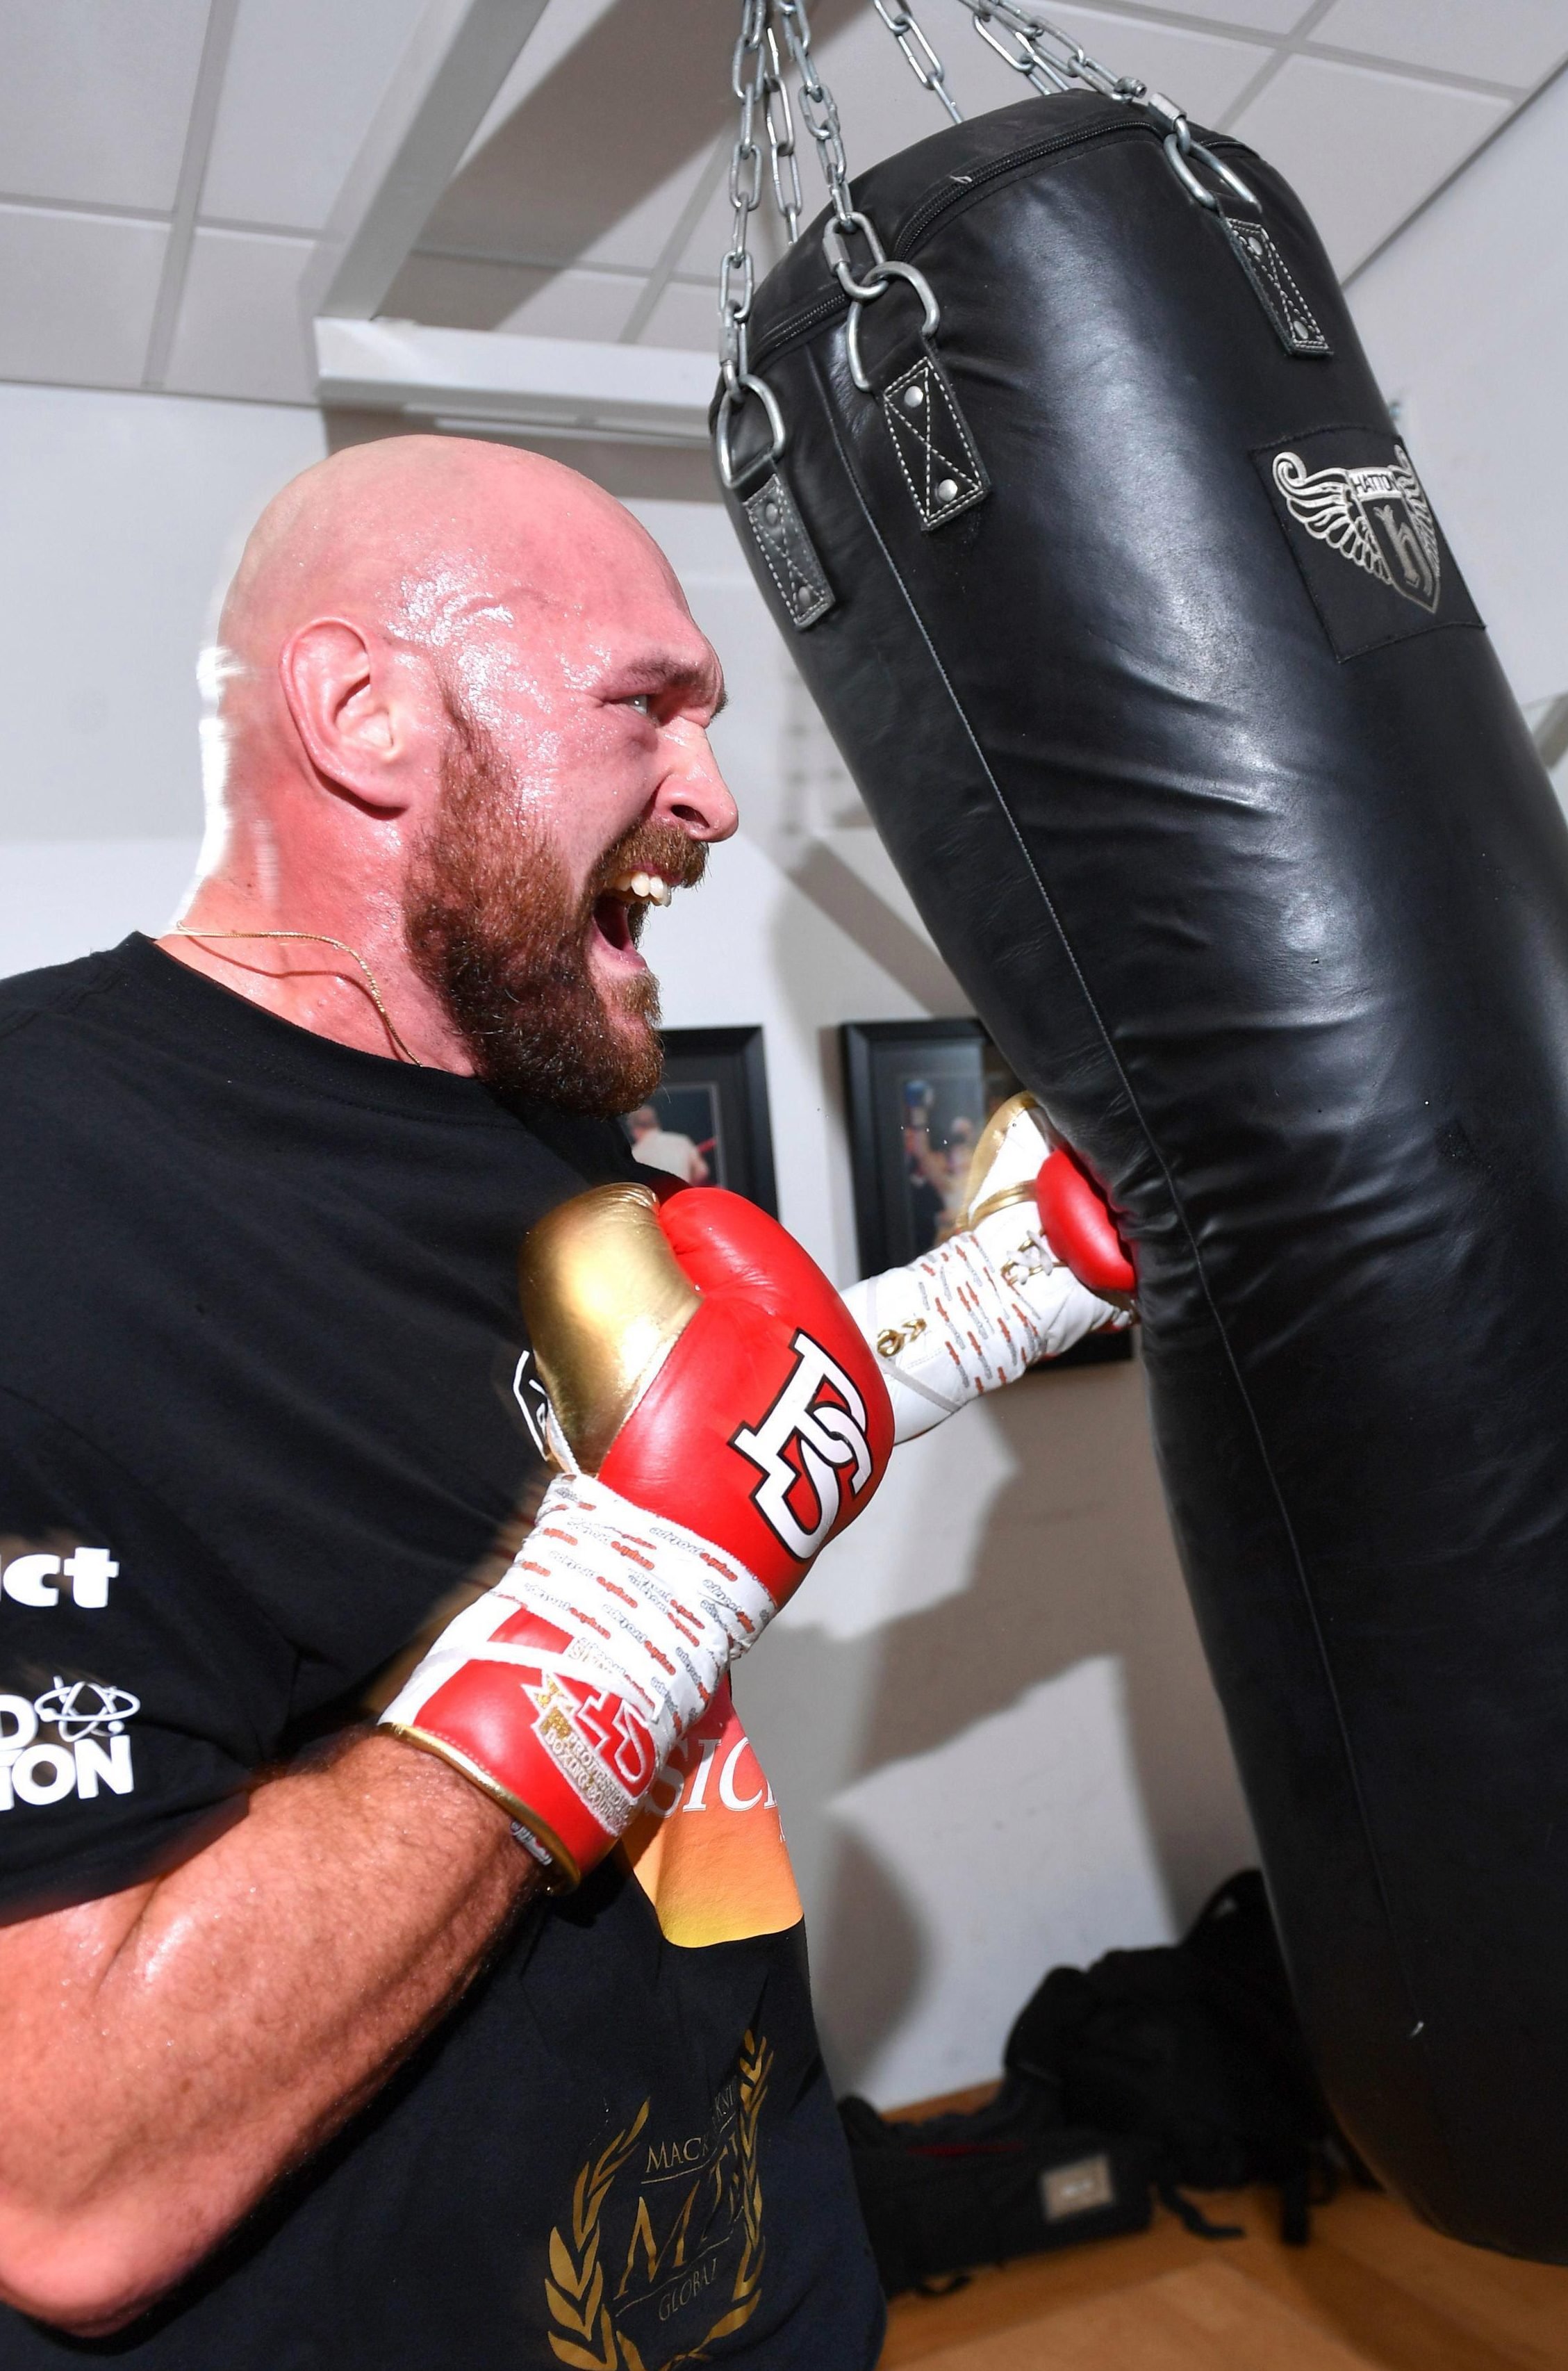 Heavyweight Tyson Fury has worked hard to get back into top fighting shape